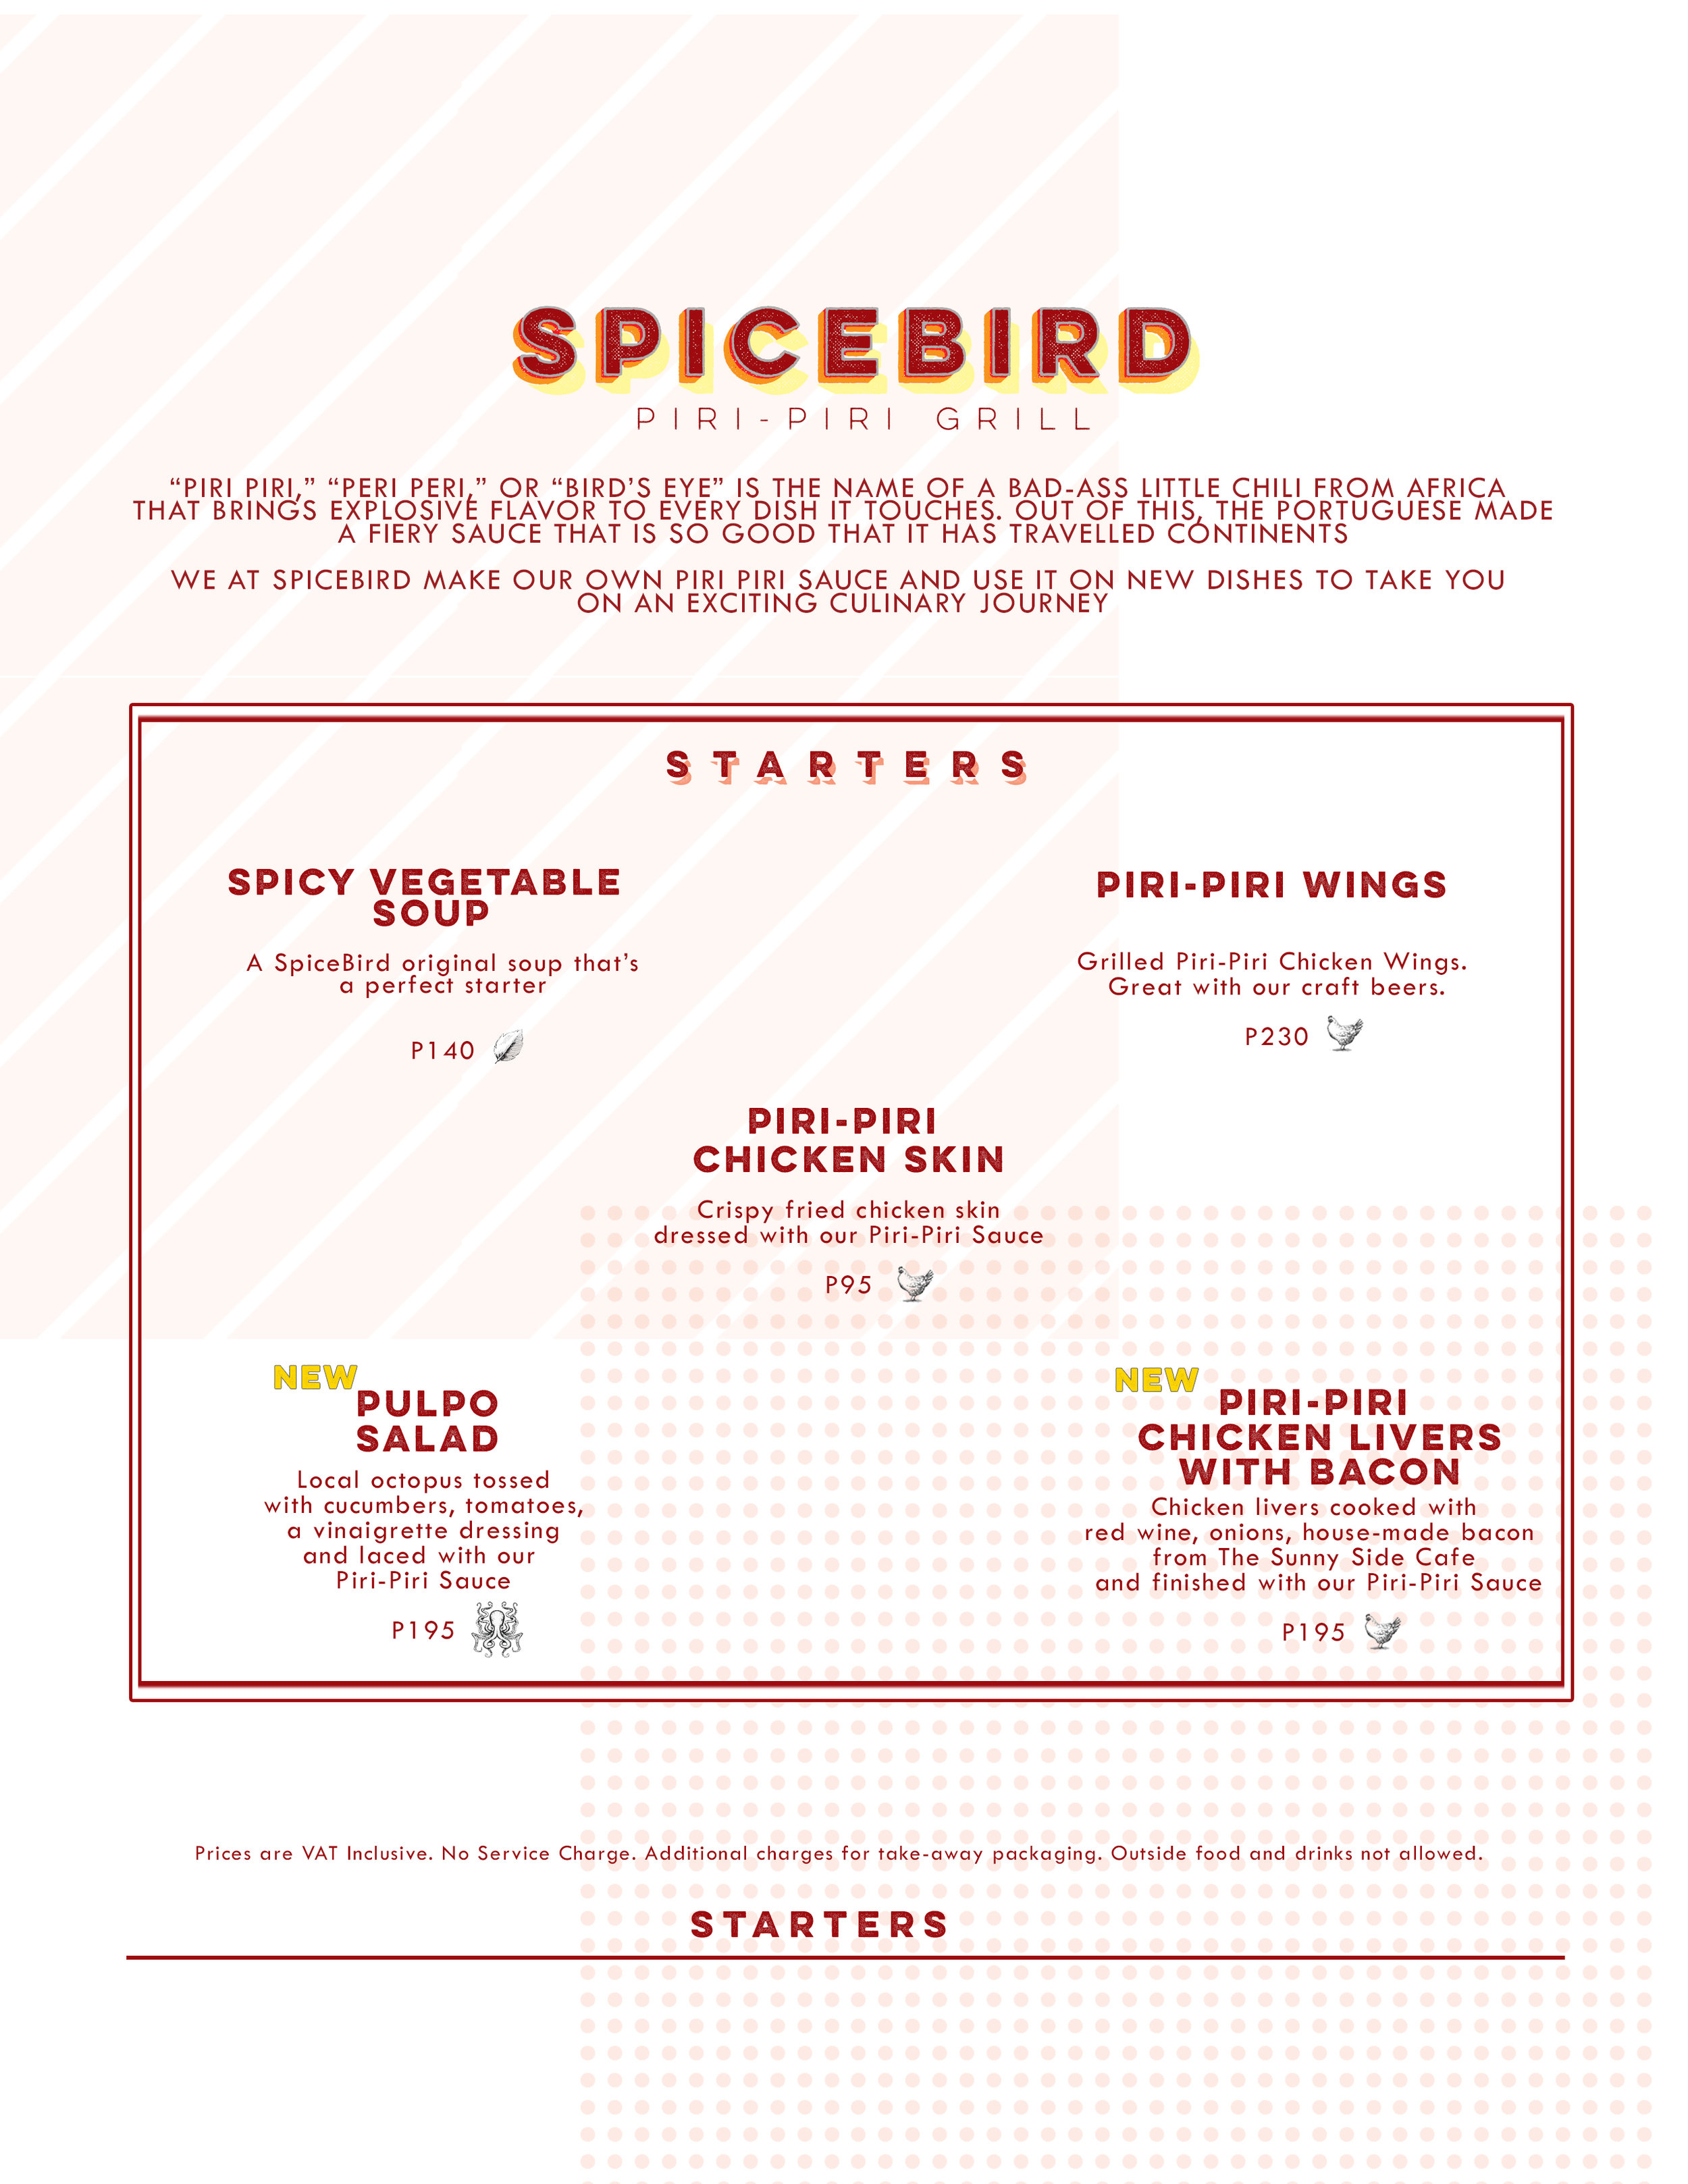 SpiceBird Menu Page One January 2017.jpg